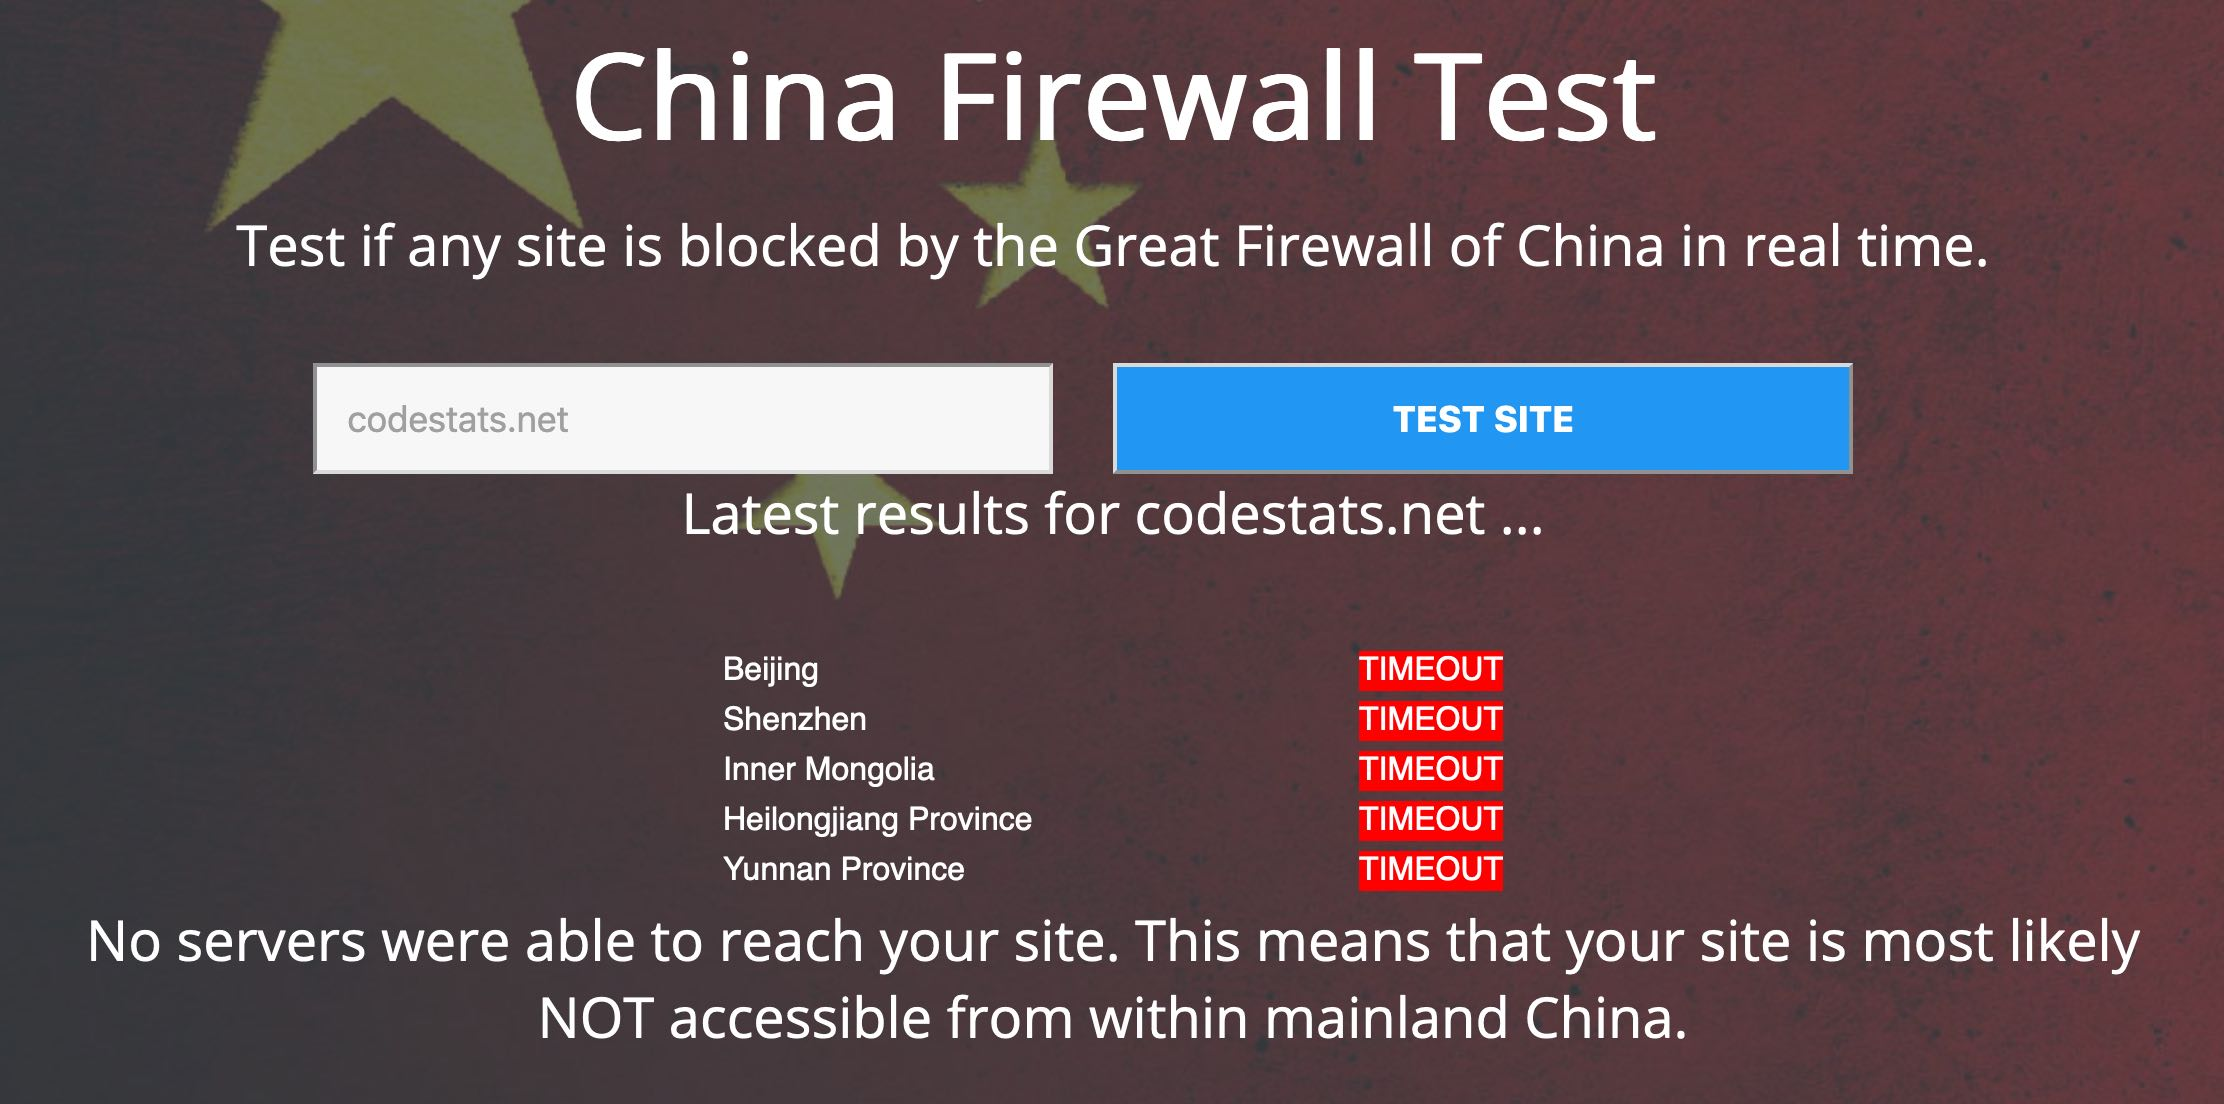 Screenshot from website showing codestats.net is not accessible from China